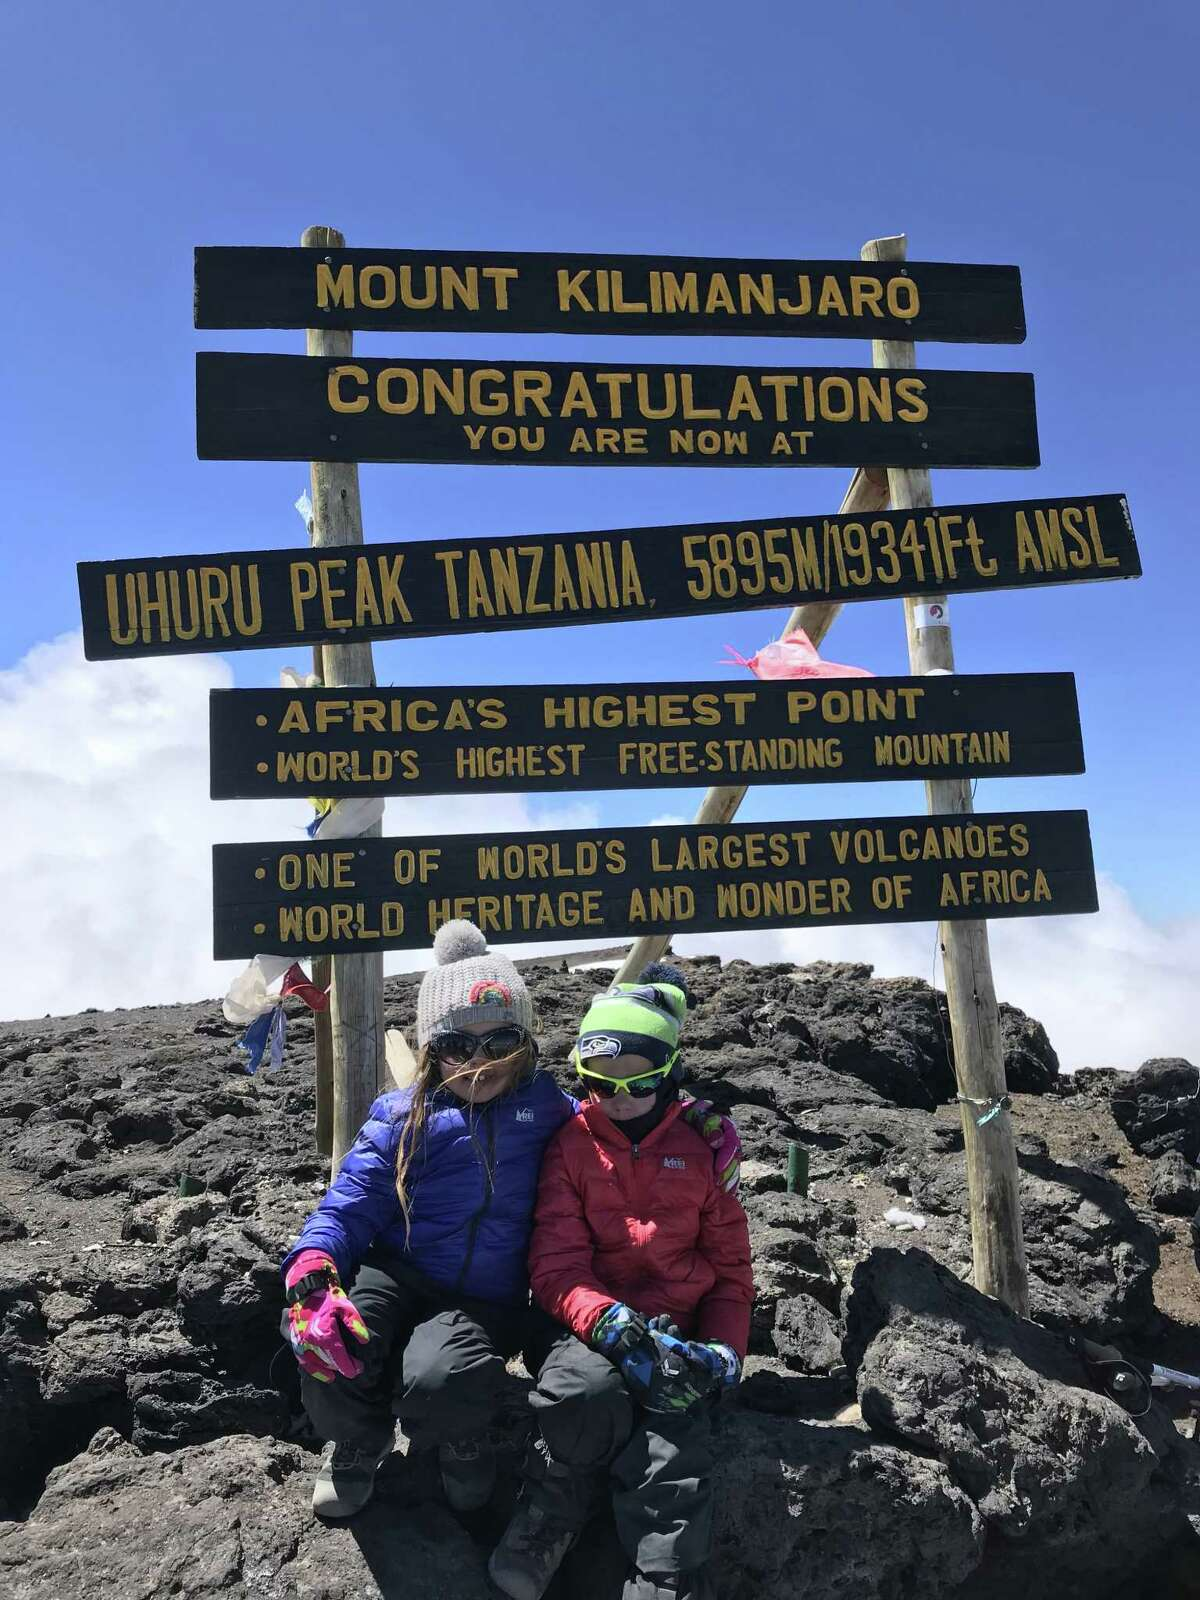 Pasadena residents Joel Redmond and his sister Charlie, climbed Mount Kilimanjaro, the highest mountain in Africa, in January with their parents, Joel Redmond Sr. and Jodi Redmond. To prepare, the youngsters participated in races including the 13-mile Huntsville Half-Marathon in October.